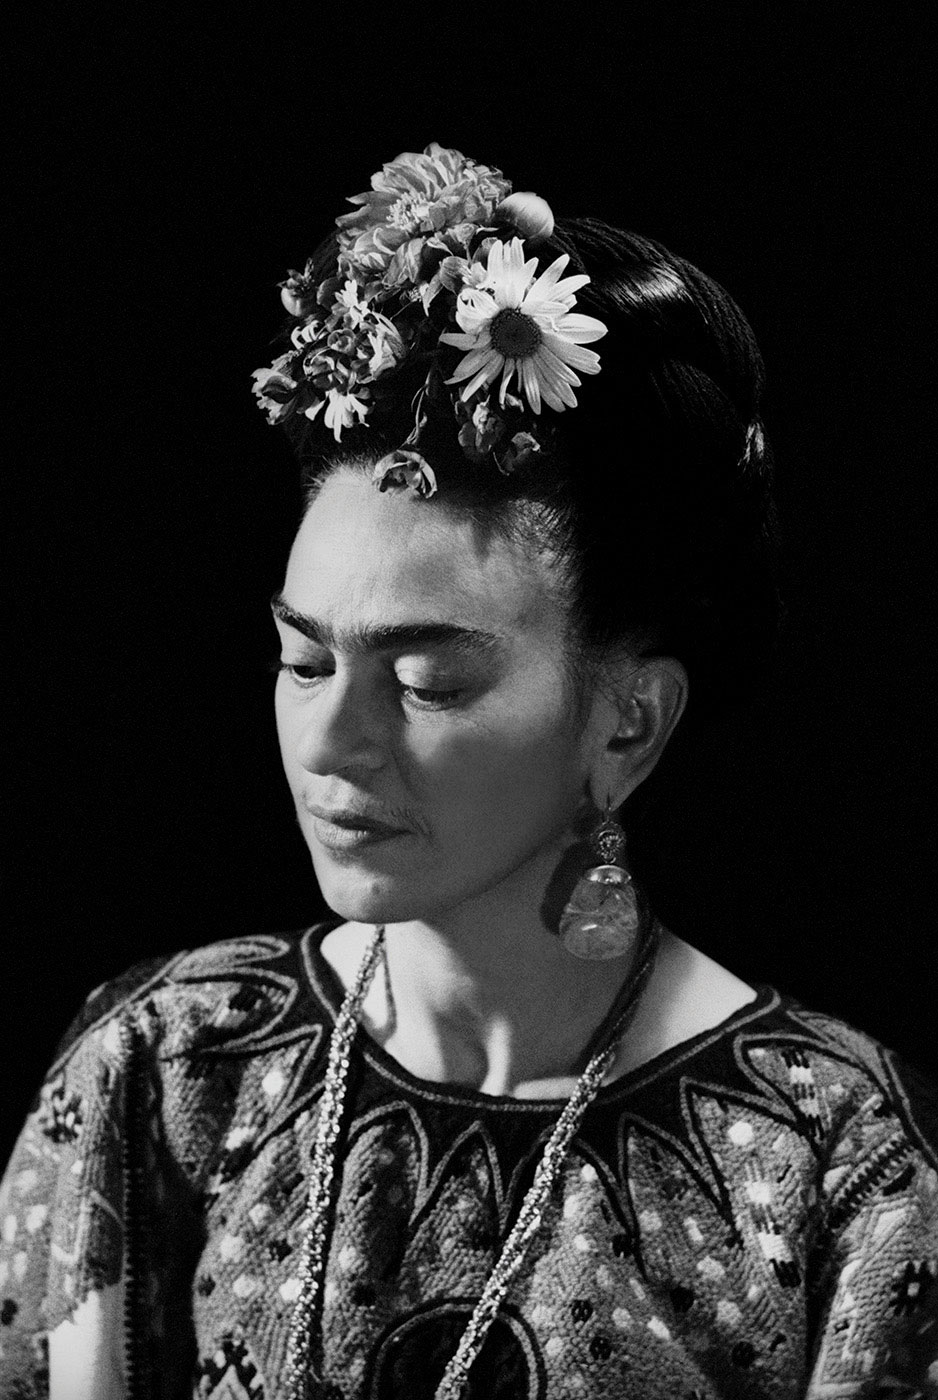 Frida Kahlo, Mexico, 1952